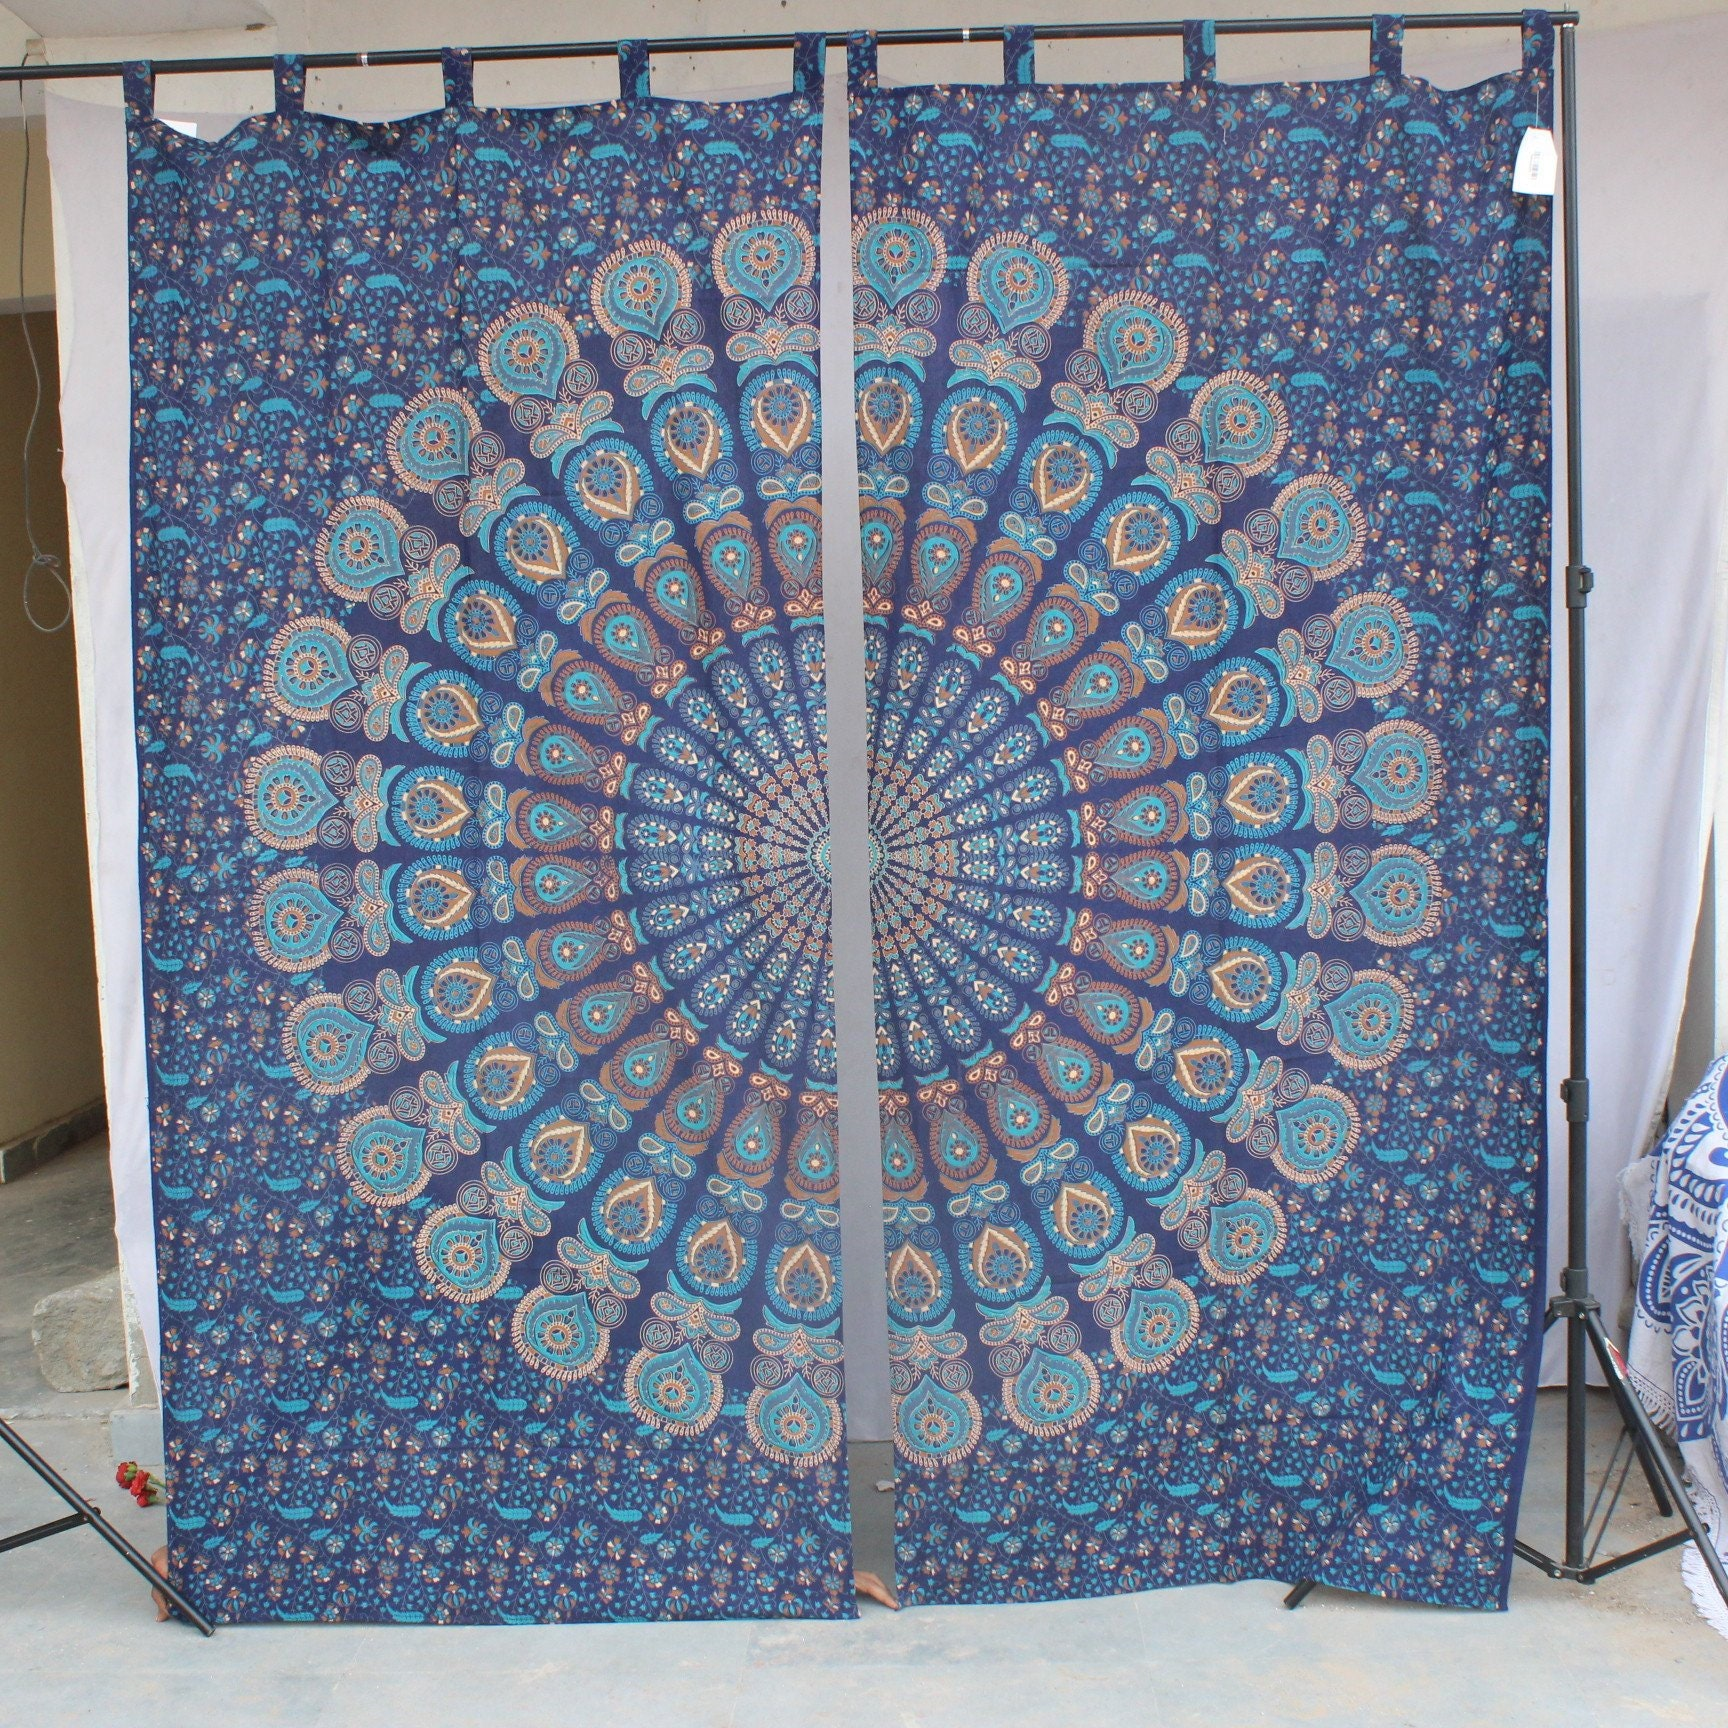 Curtains Blinds Cotton Hippie Door Curtain Decor Window Curtain Indian Mandala Elephant Tapestry Credify One